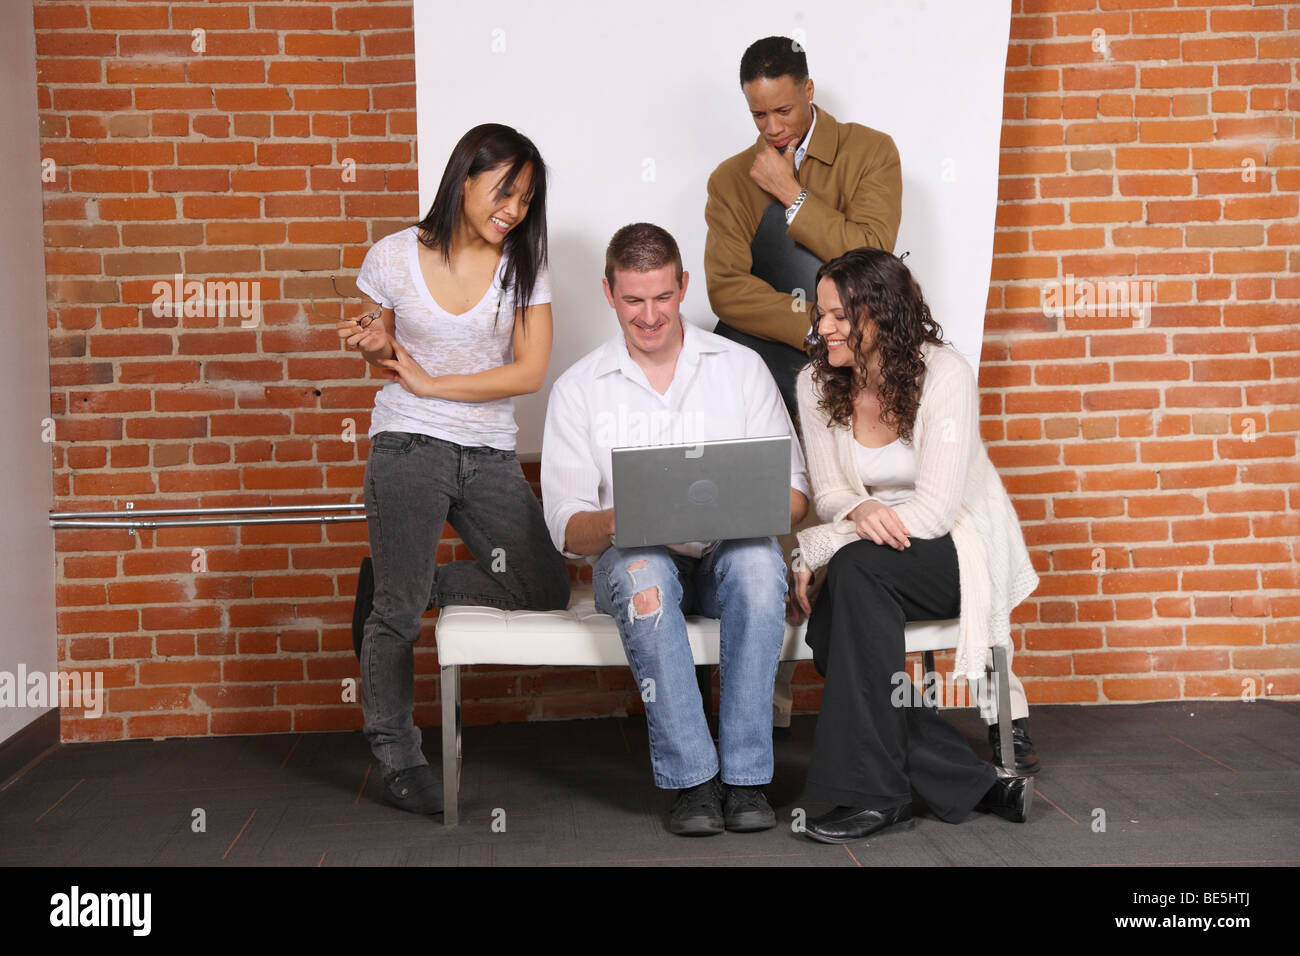 Group of young casual businesspeople look at laptop together - Stock Image